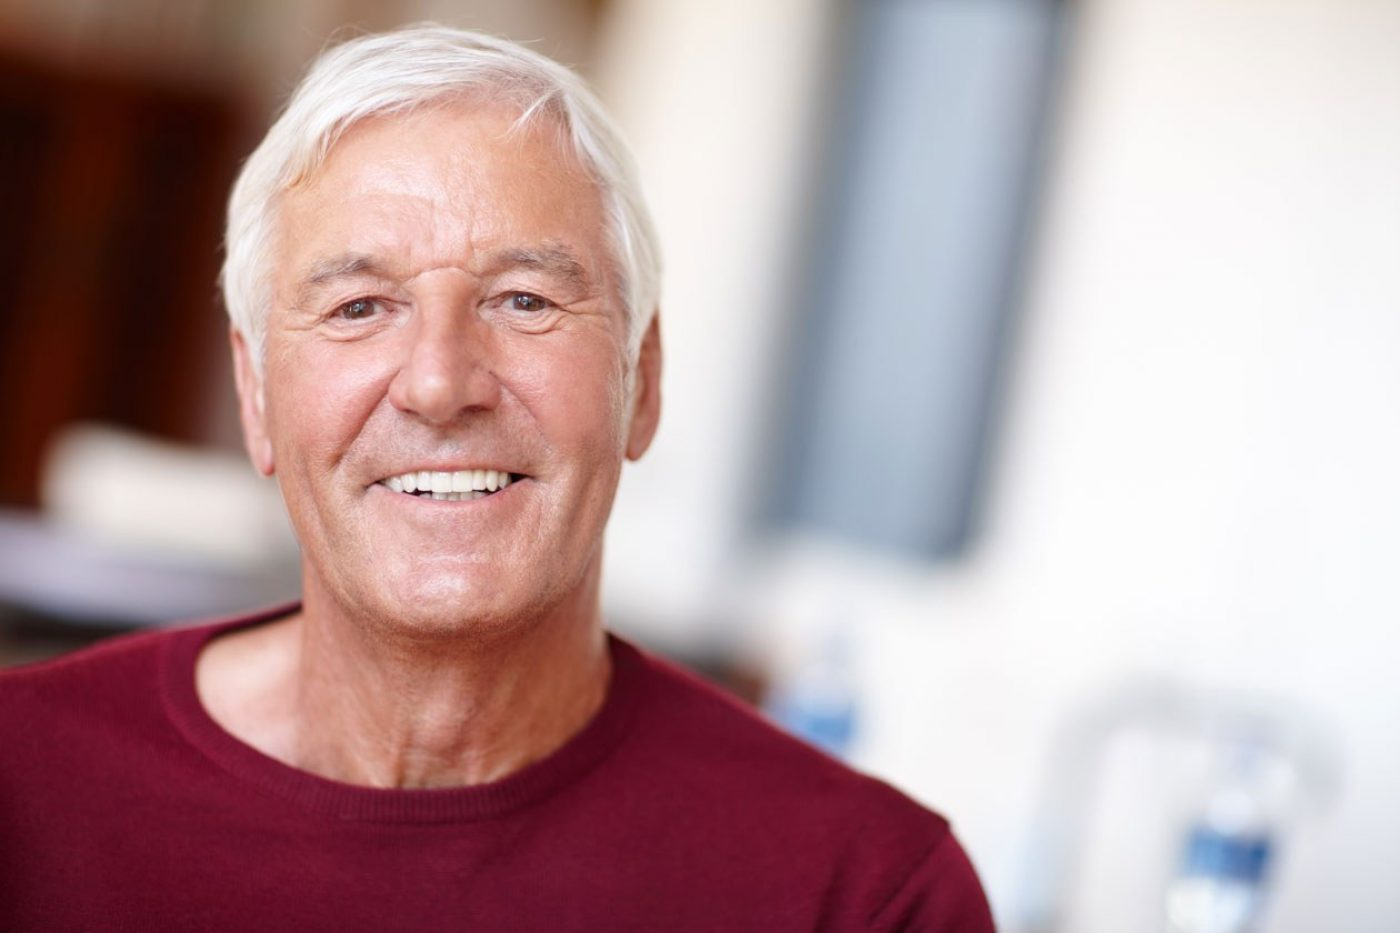 Ilchester Dental Implants Implantsecureddentures